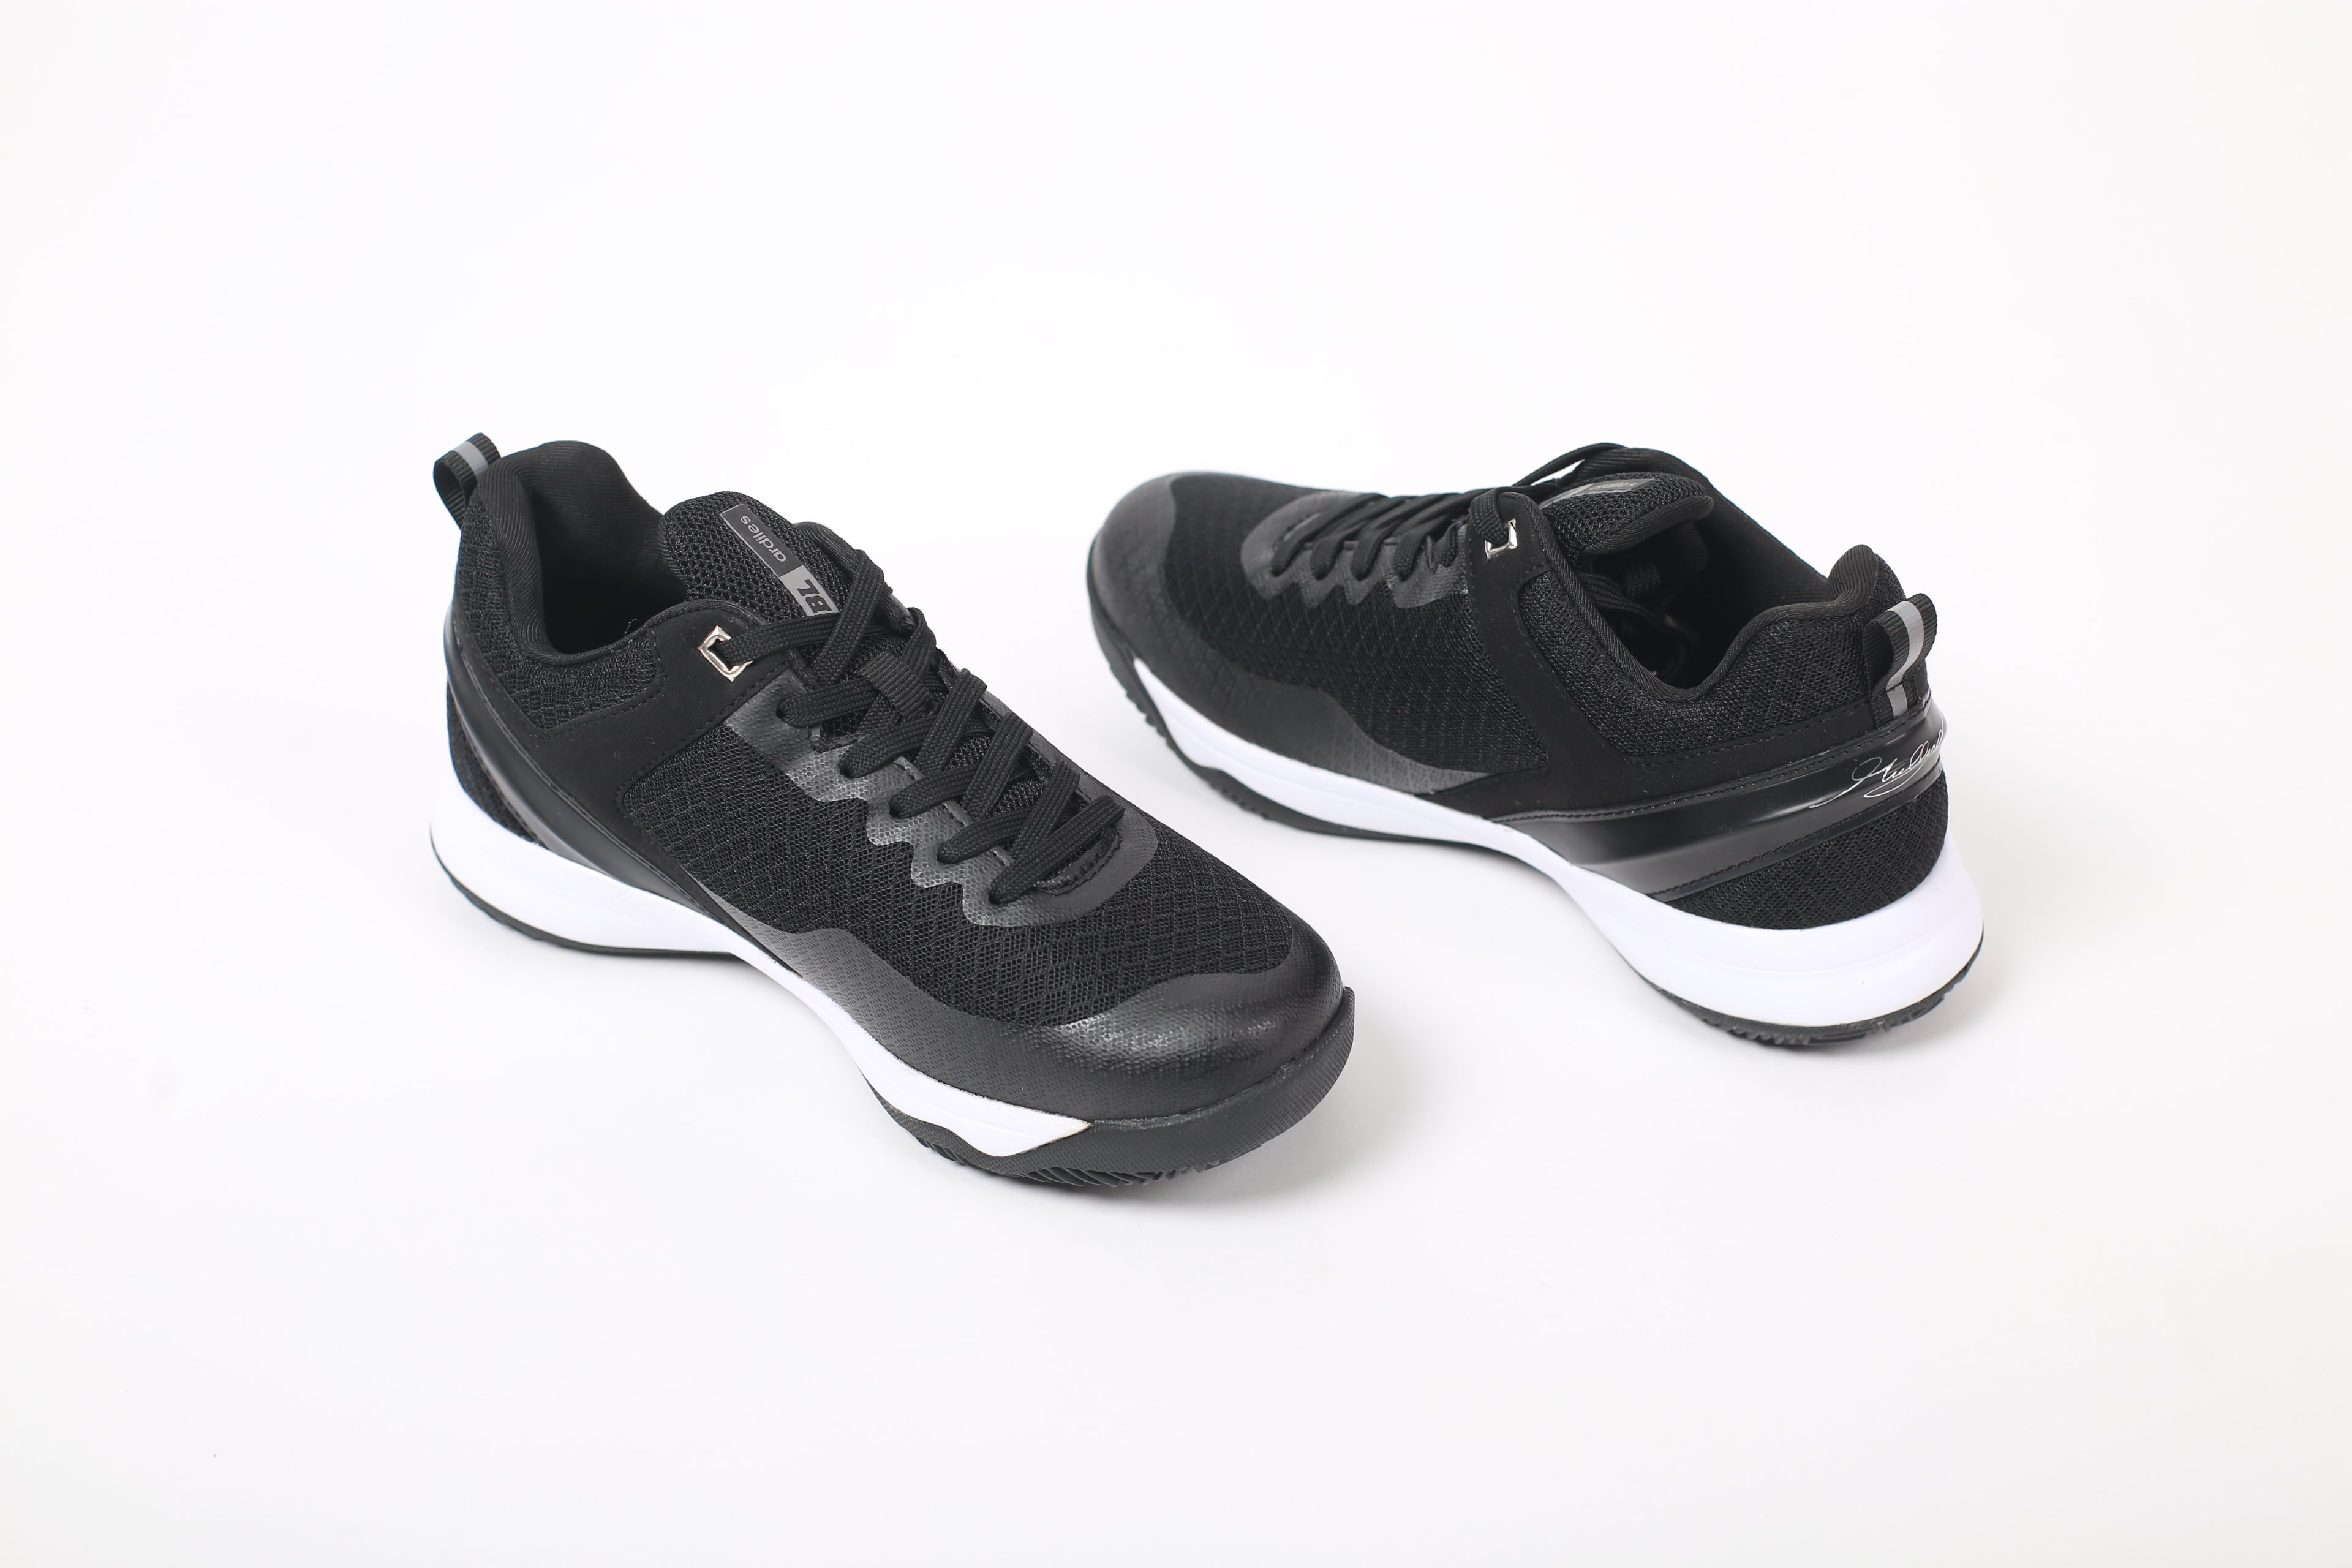 AZA 6 Kids Footwear - Black / White